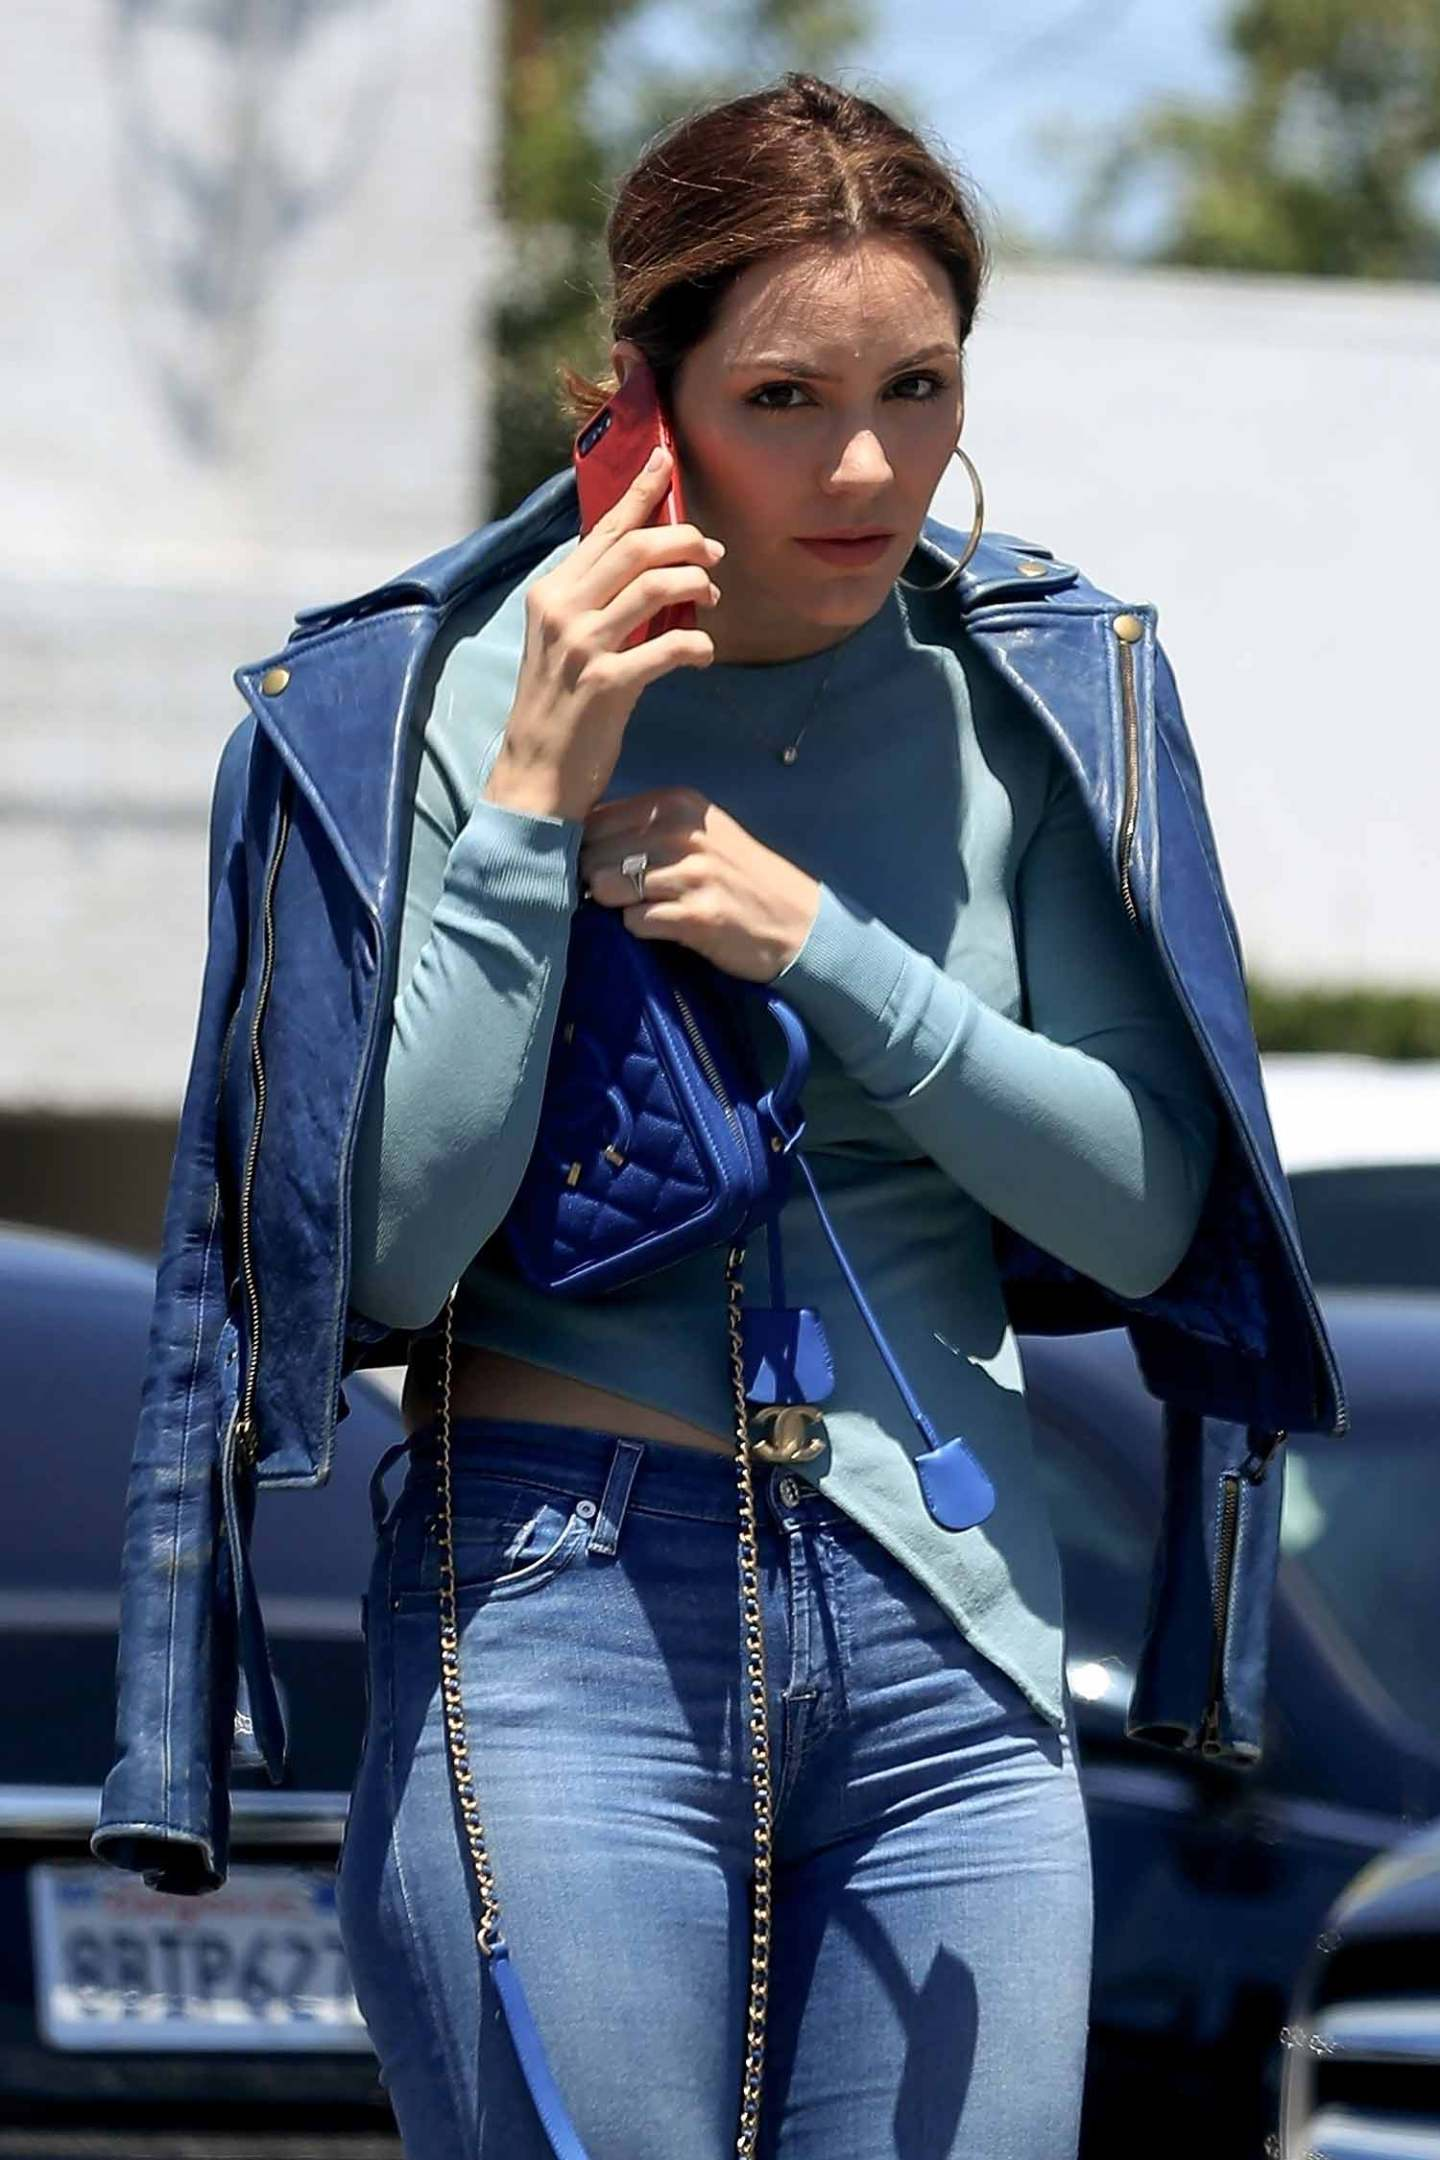 Katharine McPhee Wears 7 For All Mankind Jeans